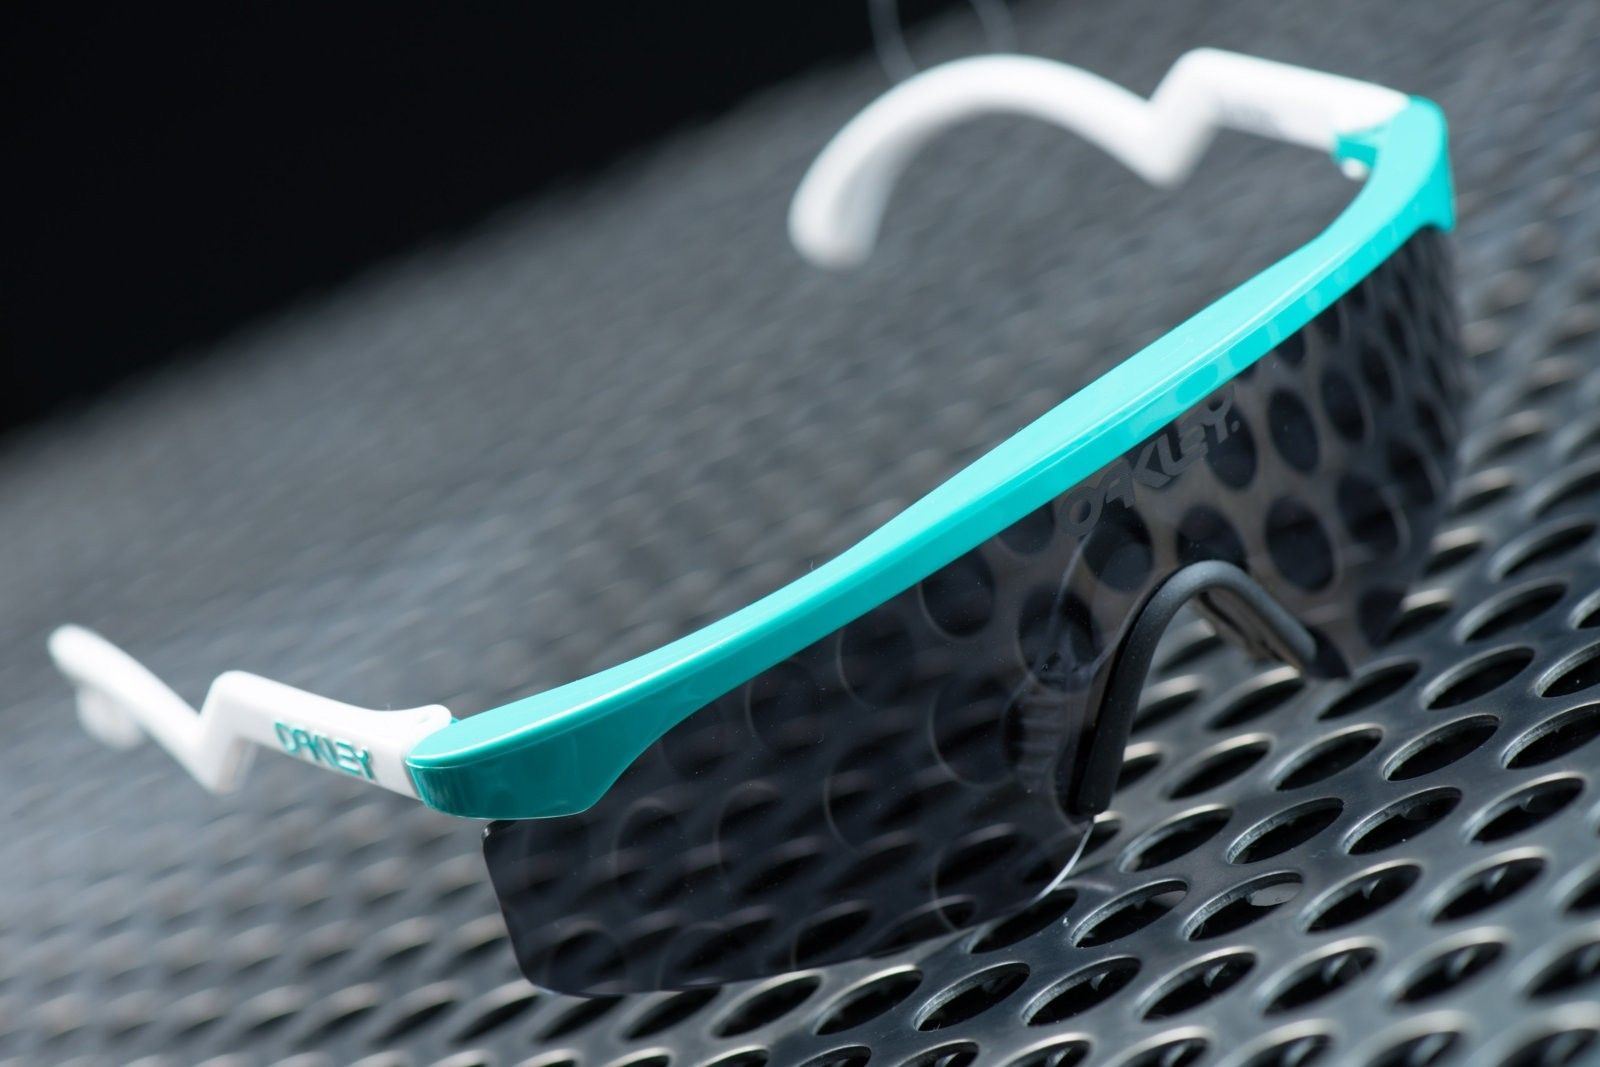 2 of 3 Signed Oakley Heritage Razorblades by Jim Jannard - Seafoam with Grey - Untitled Session00361.jpg